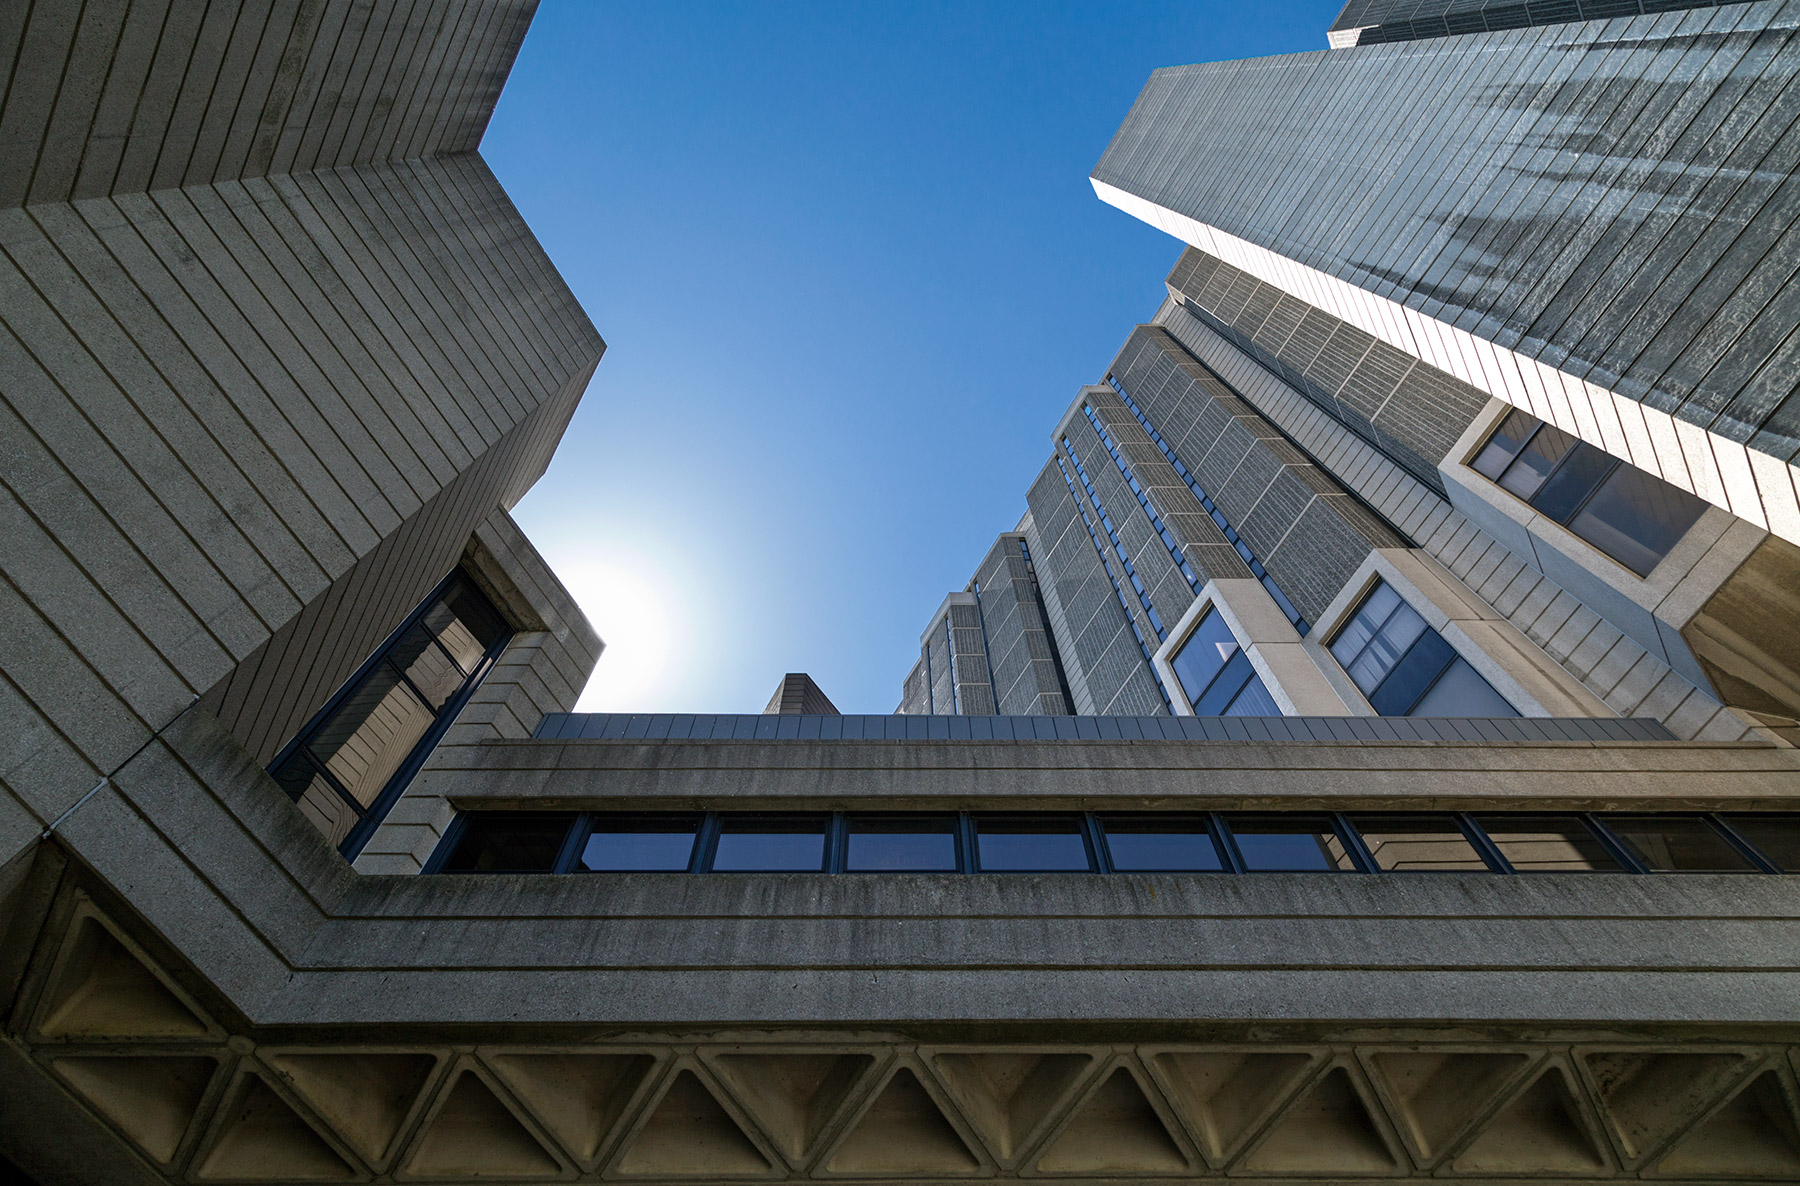 20150530. Robarts ramparts protects the Library keep within at